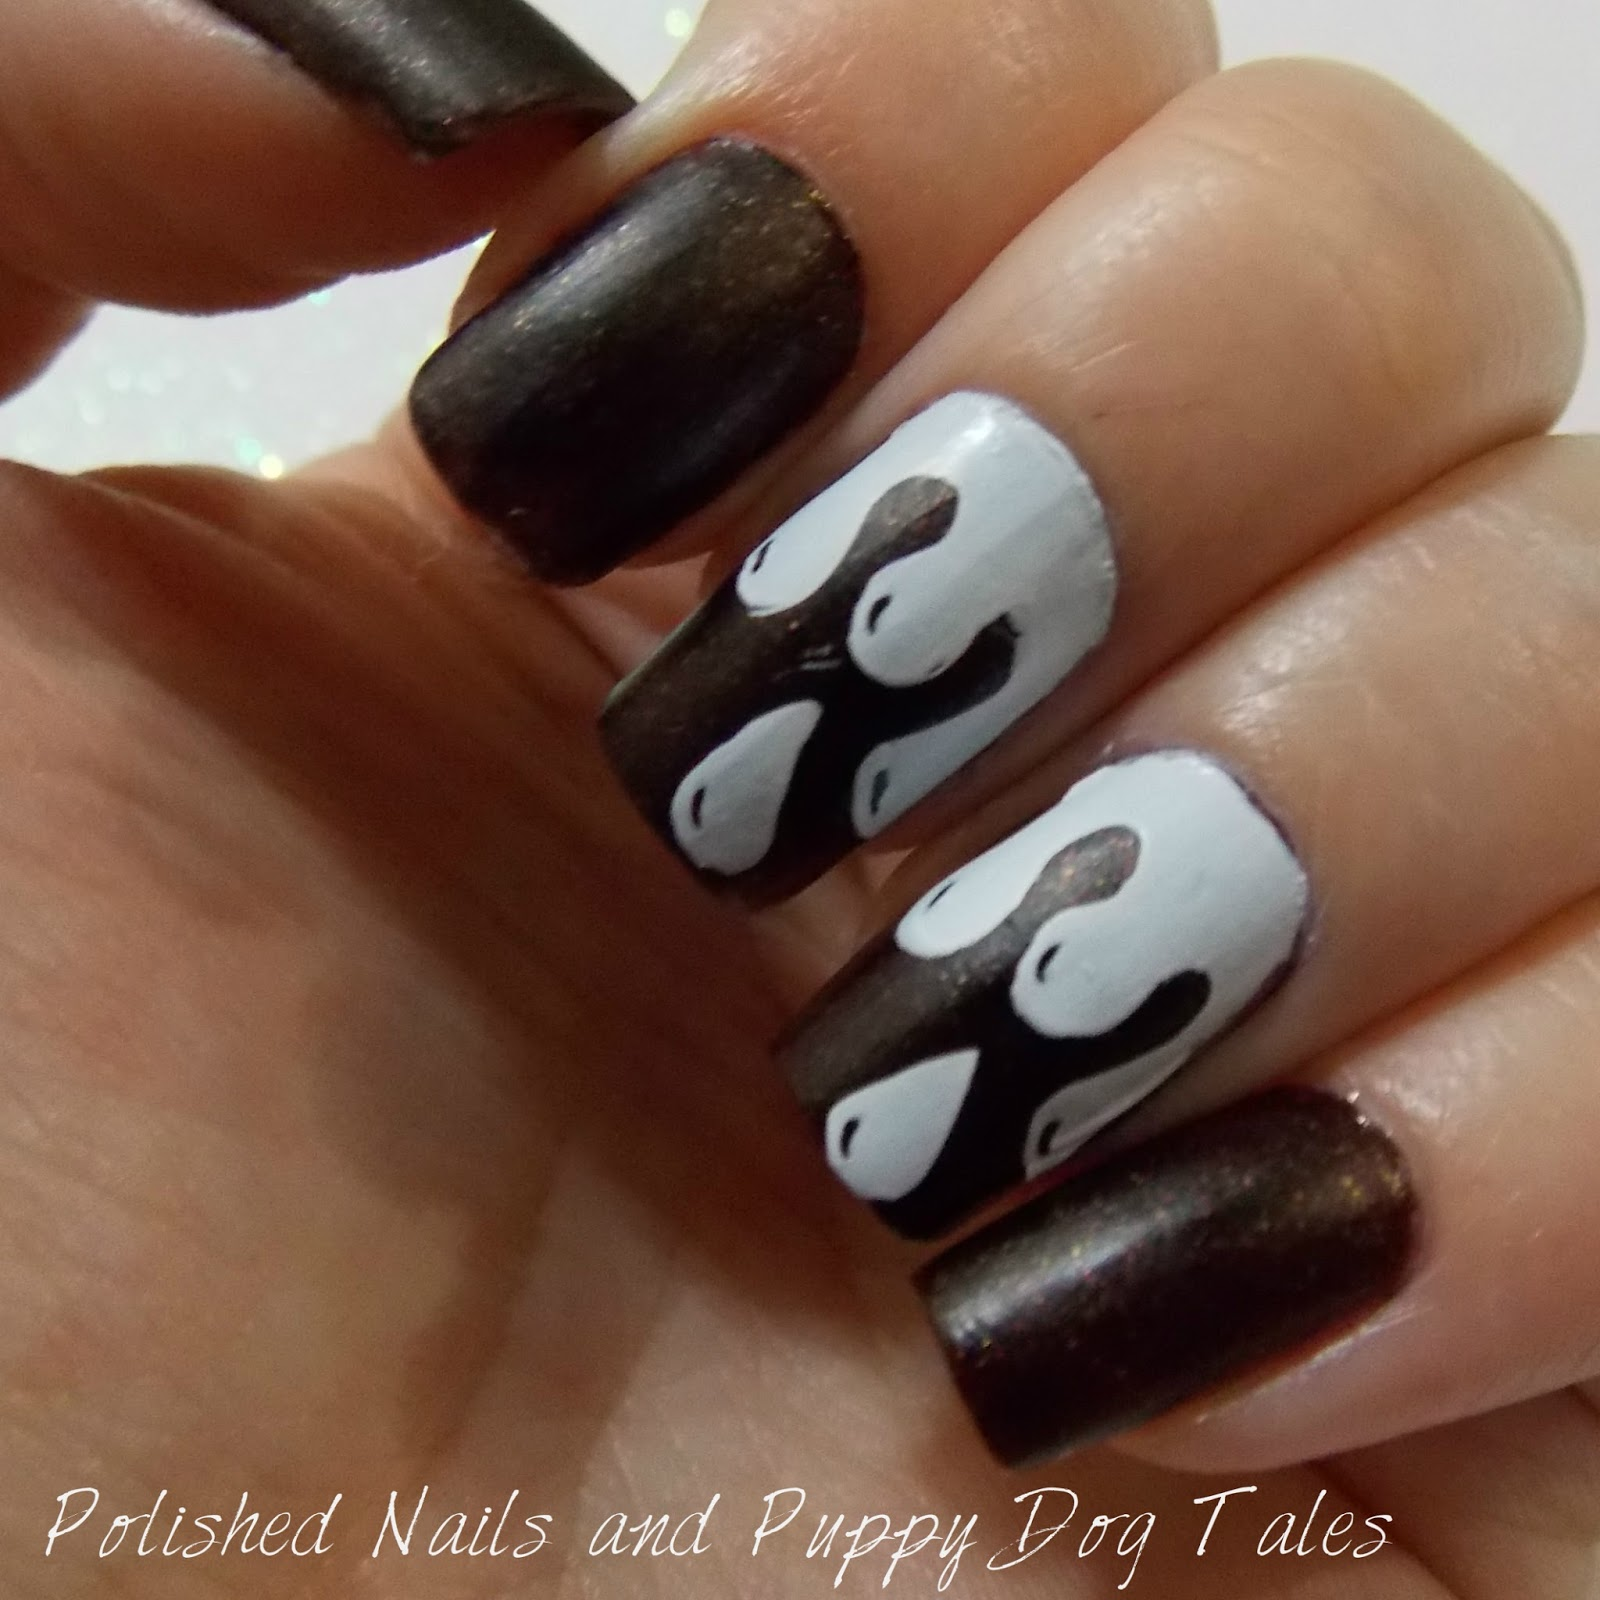 Polished Nails And Puppy Dog Tales 26 Great Nail Art Ideas Winter